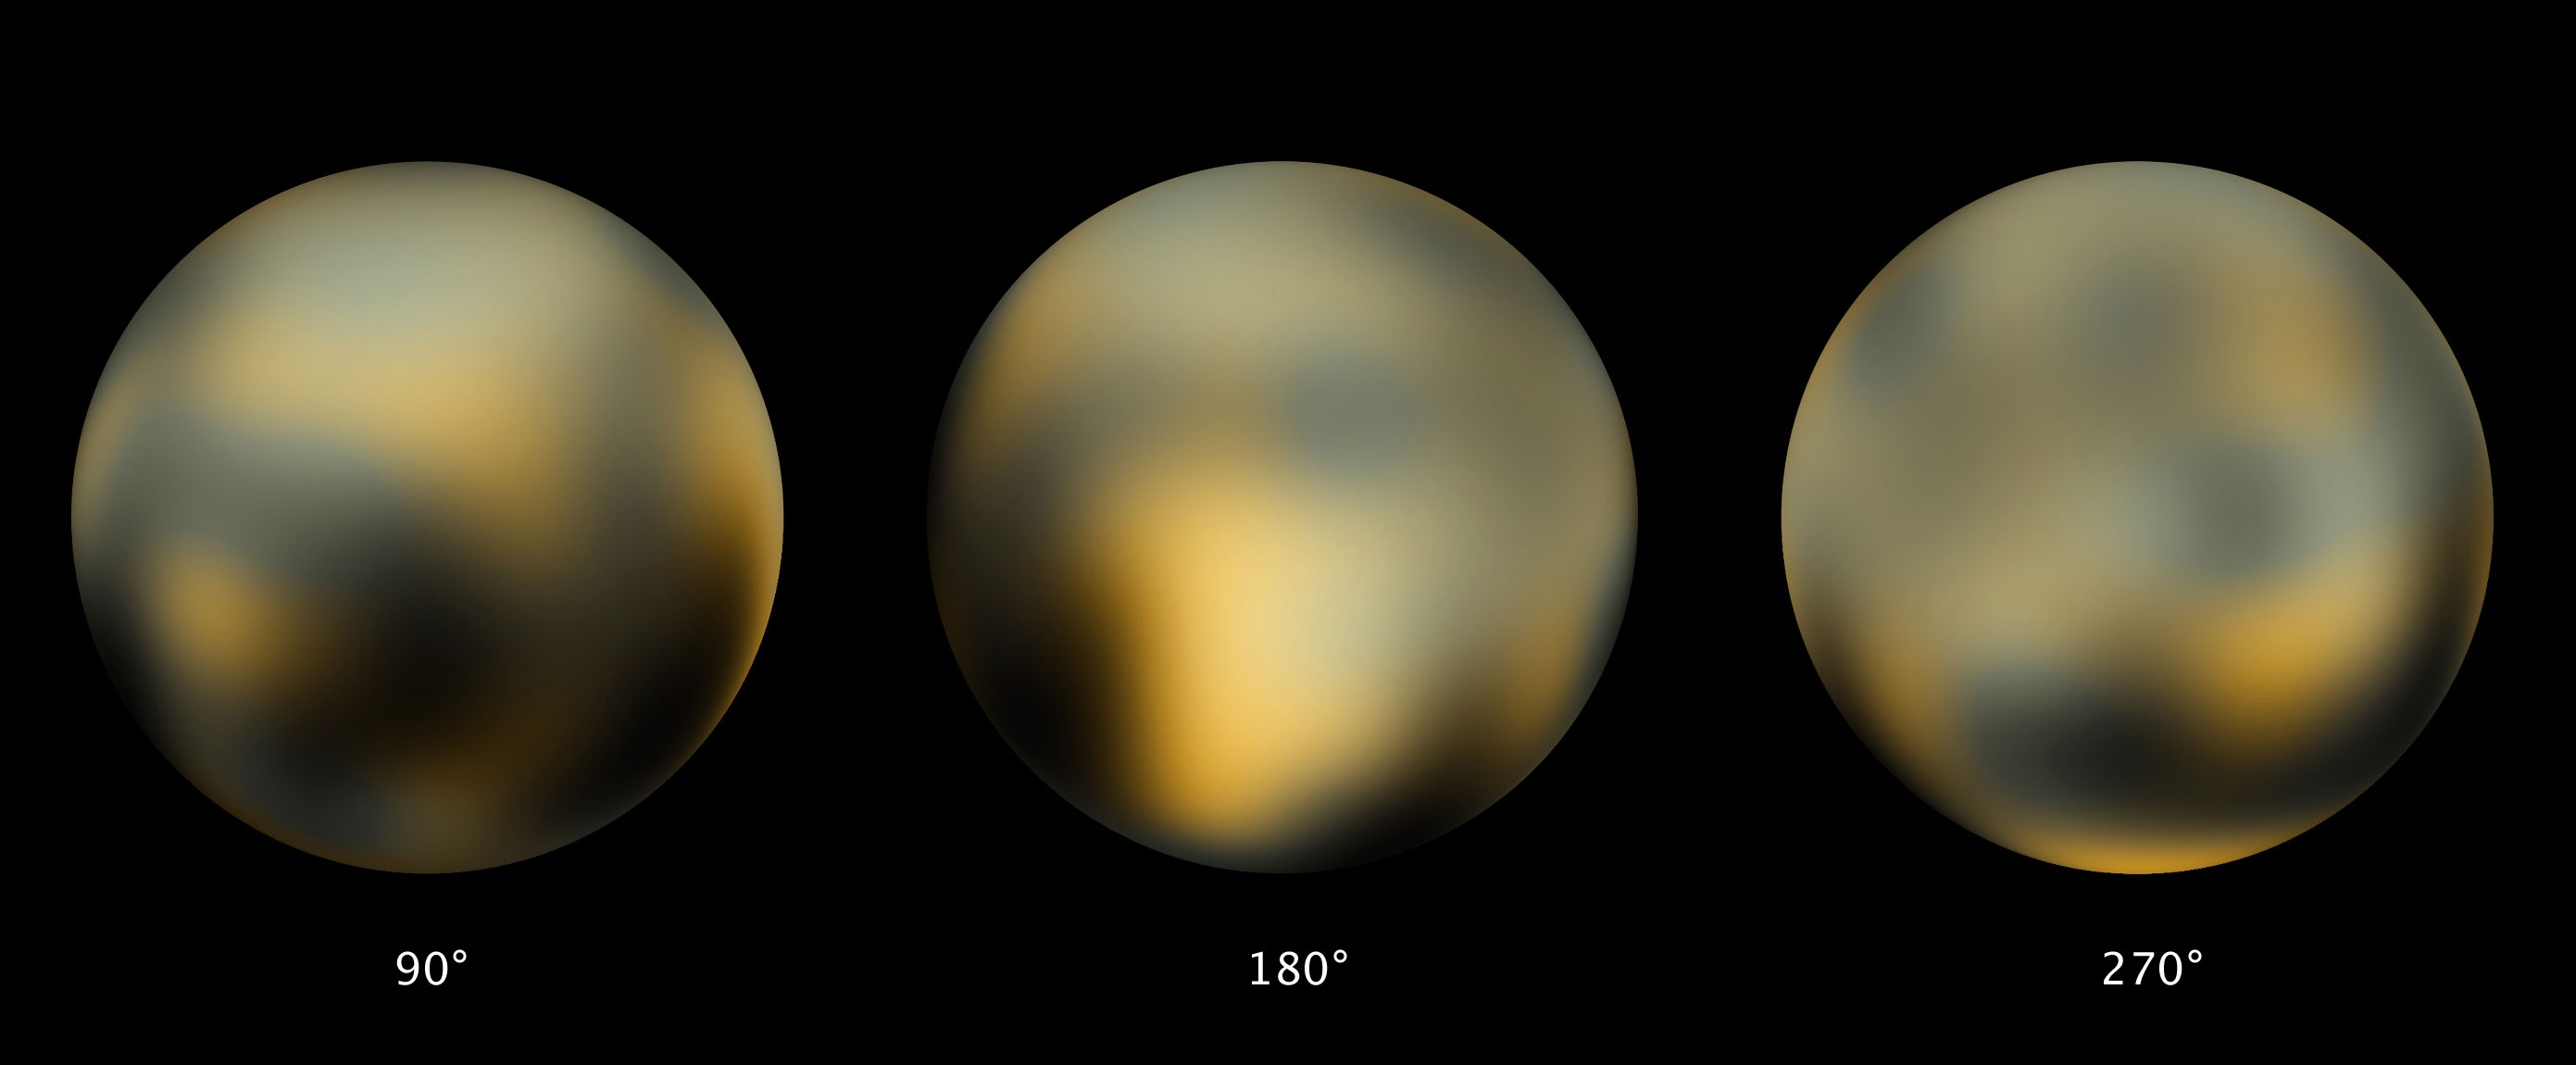 planet behind pluto - photo #26